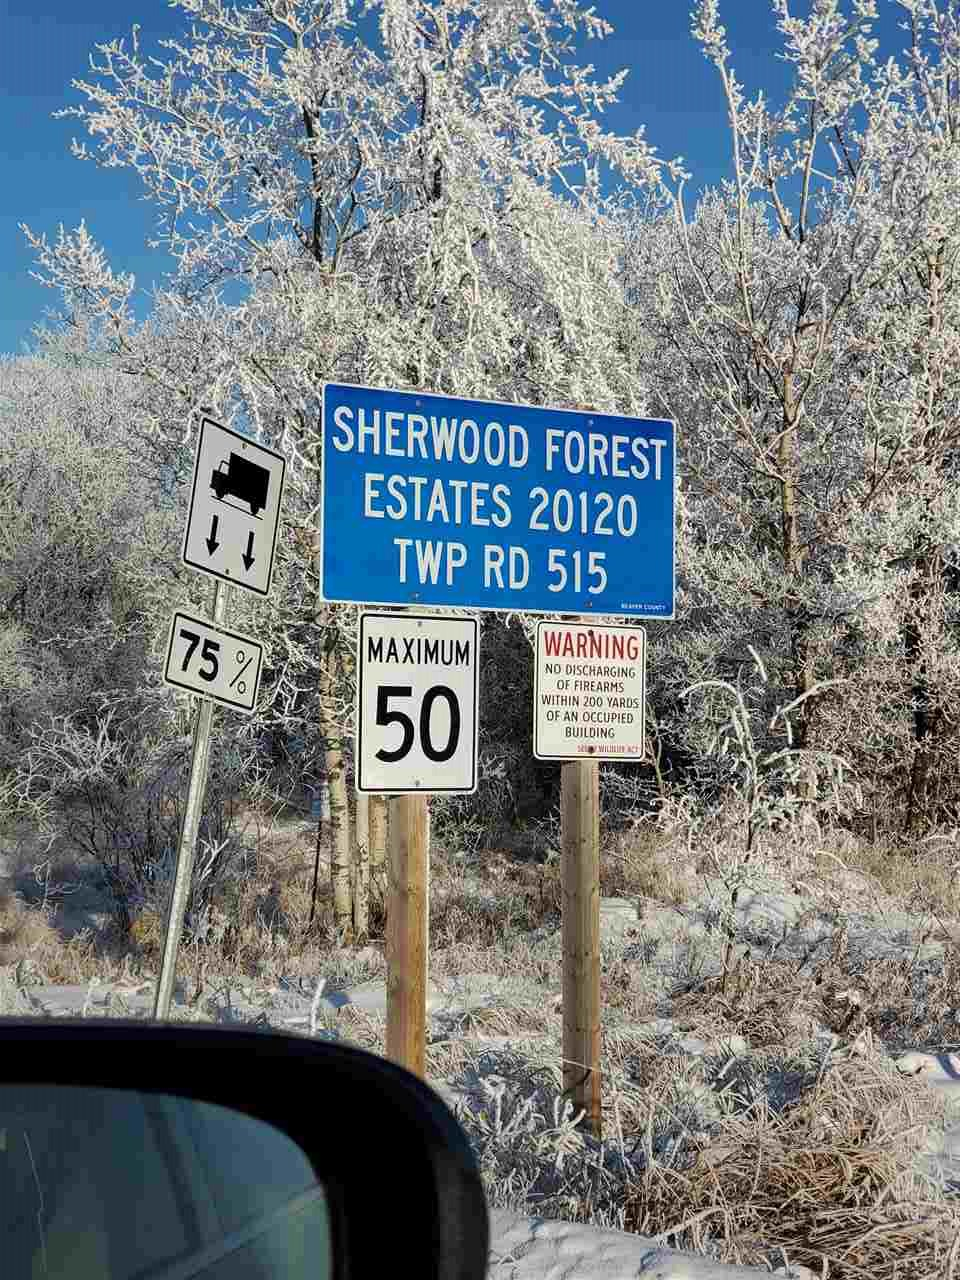 1.550 acres, great opportunity to build your home in the lovely rural community of Sherwood Forest Estates! Under 30 minutes to Sherwood Park. Lot backs onto lake.